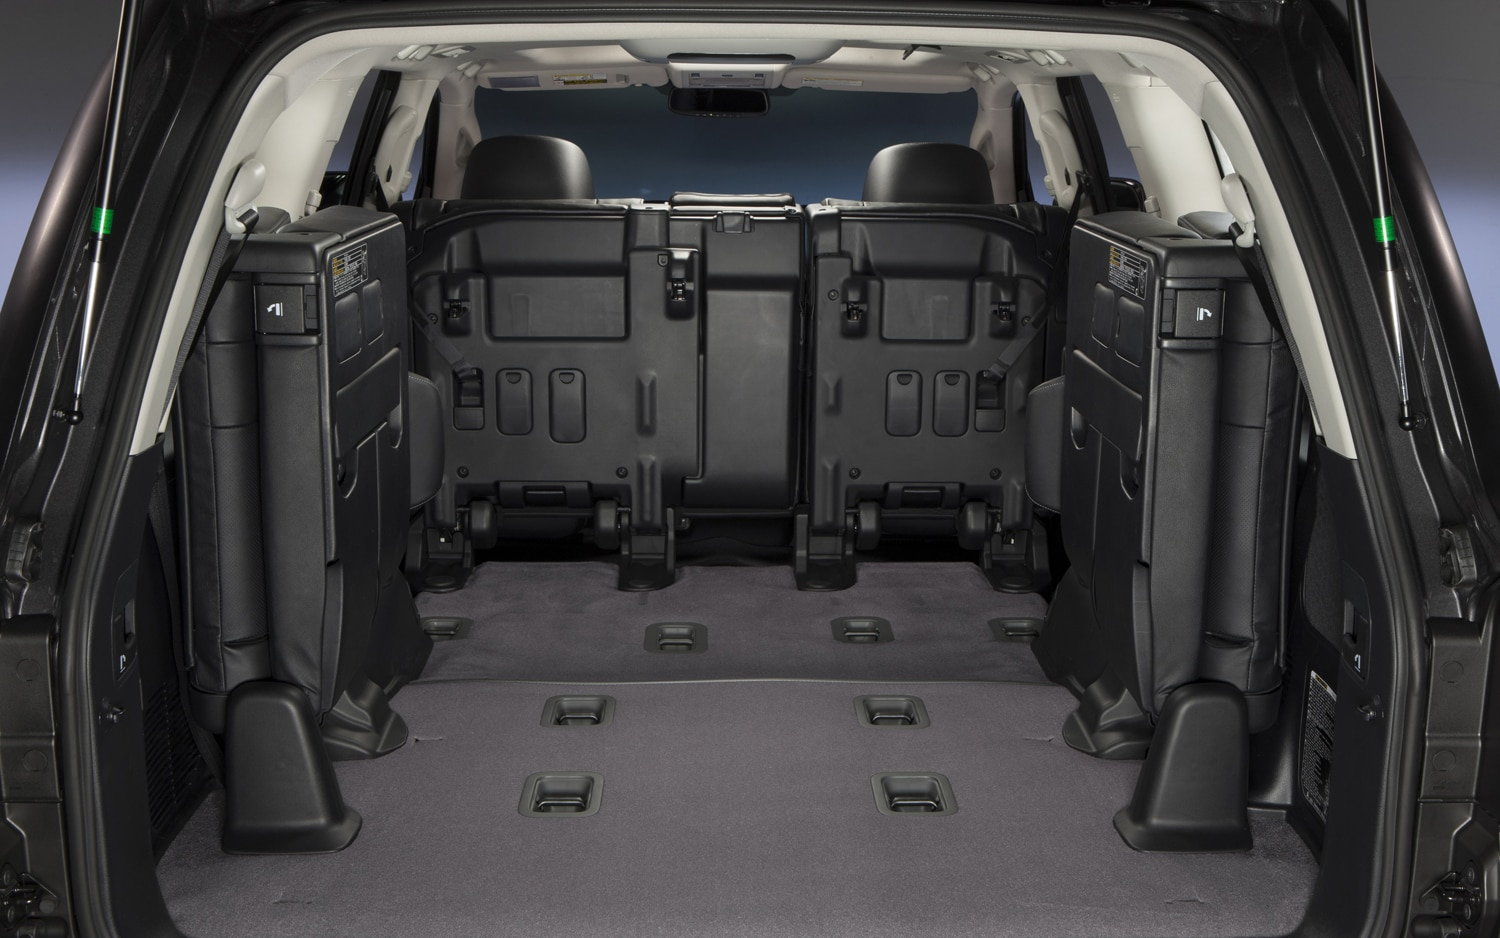 2013 Toyota Land Cruiser Rear Seating Folded